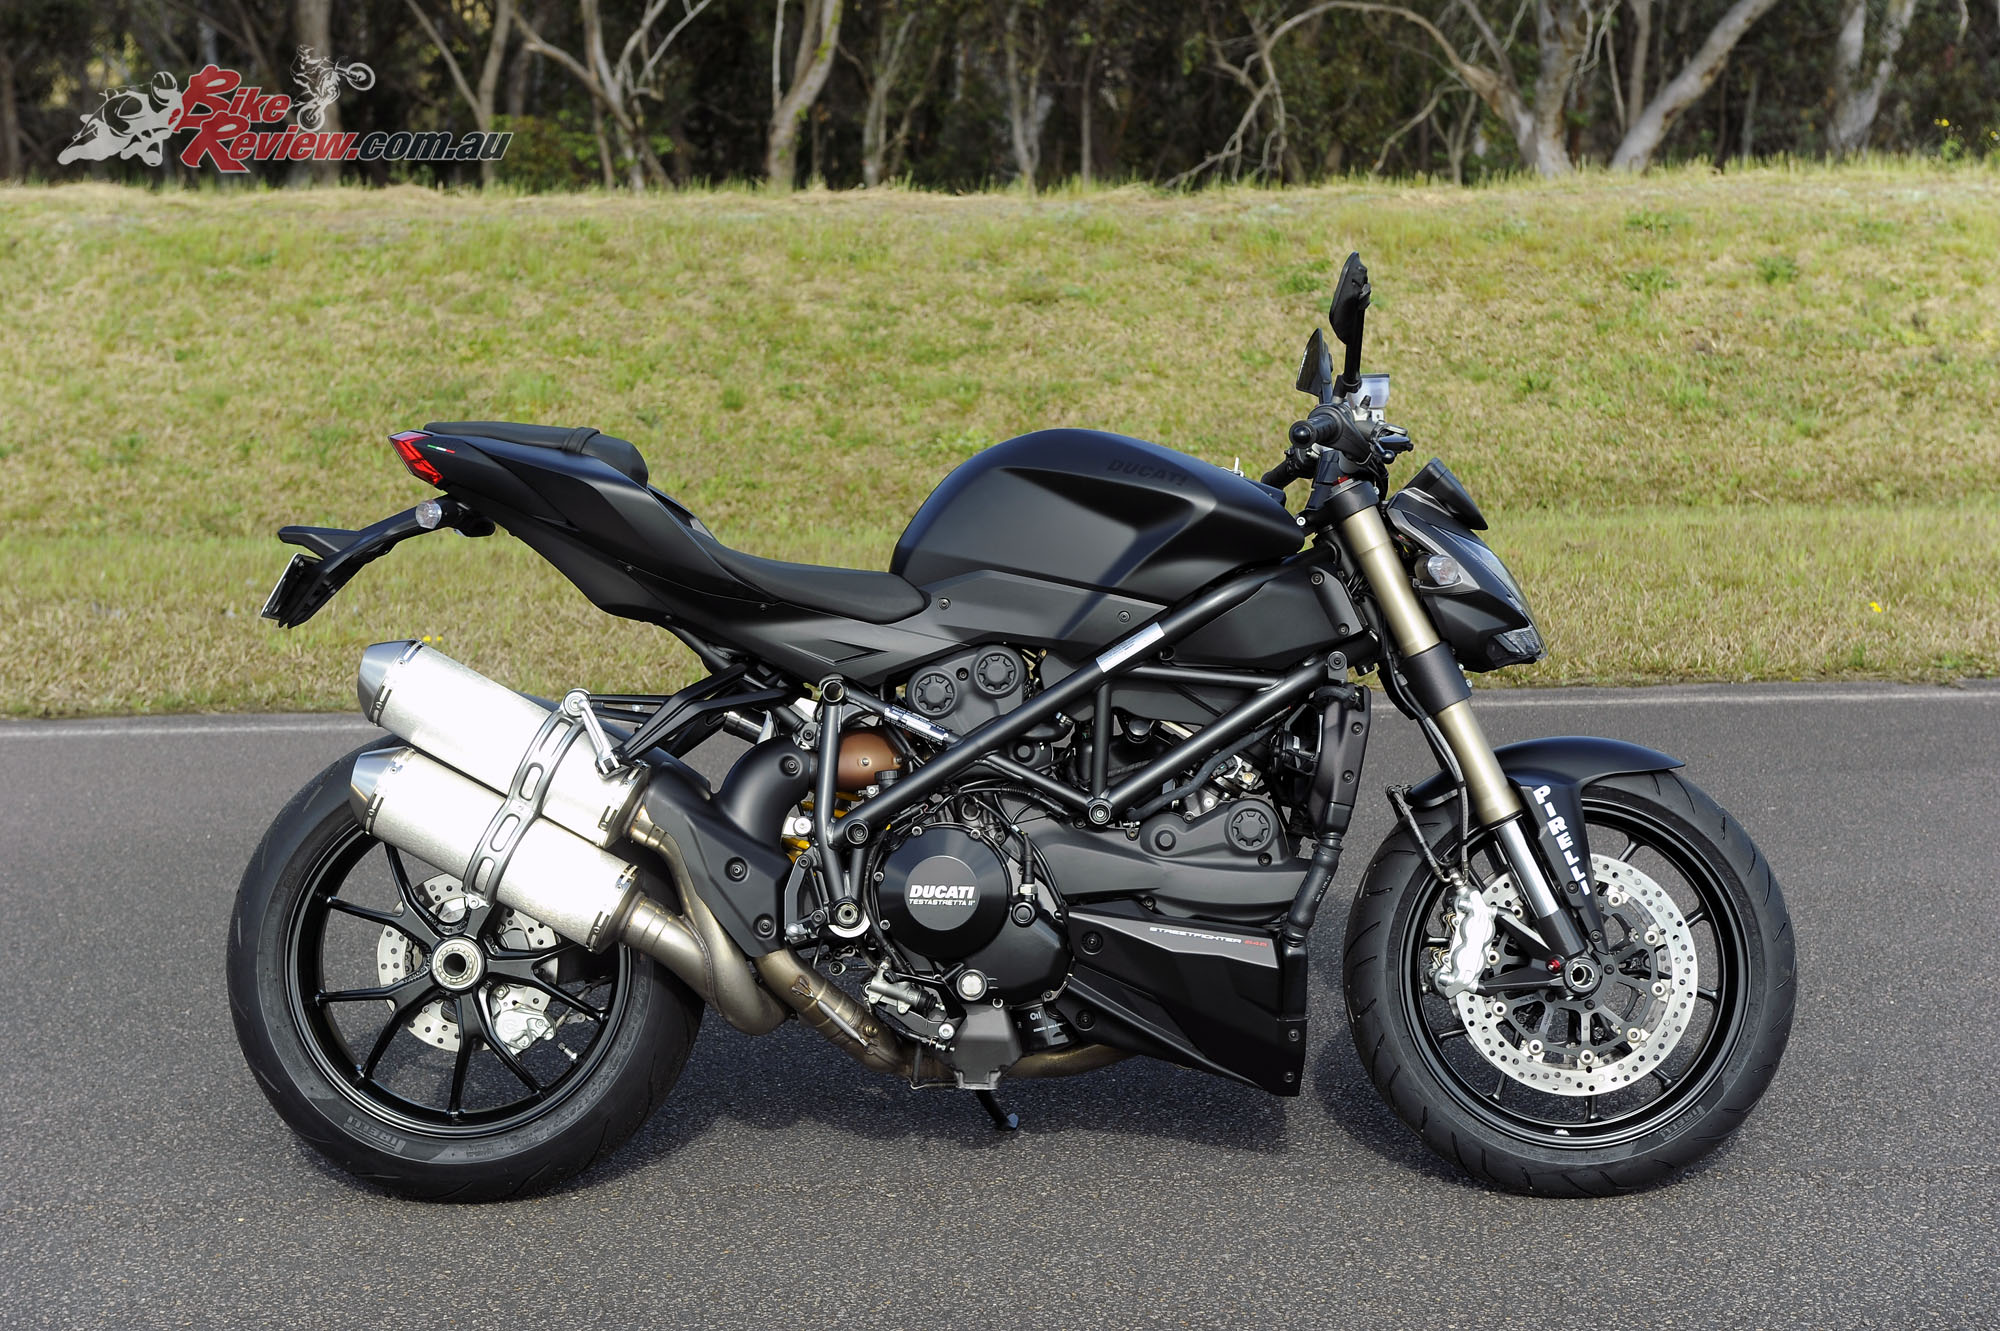 Mid-capacity Nakedbike Comparo - Ducati 848 Streetfighter - Bike Review